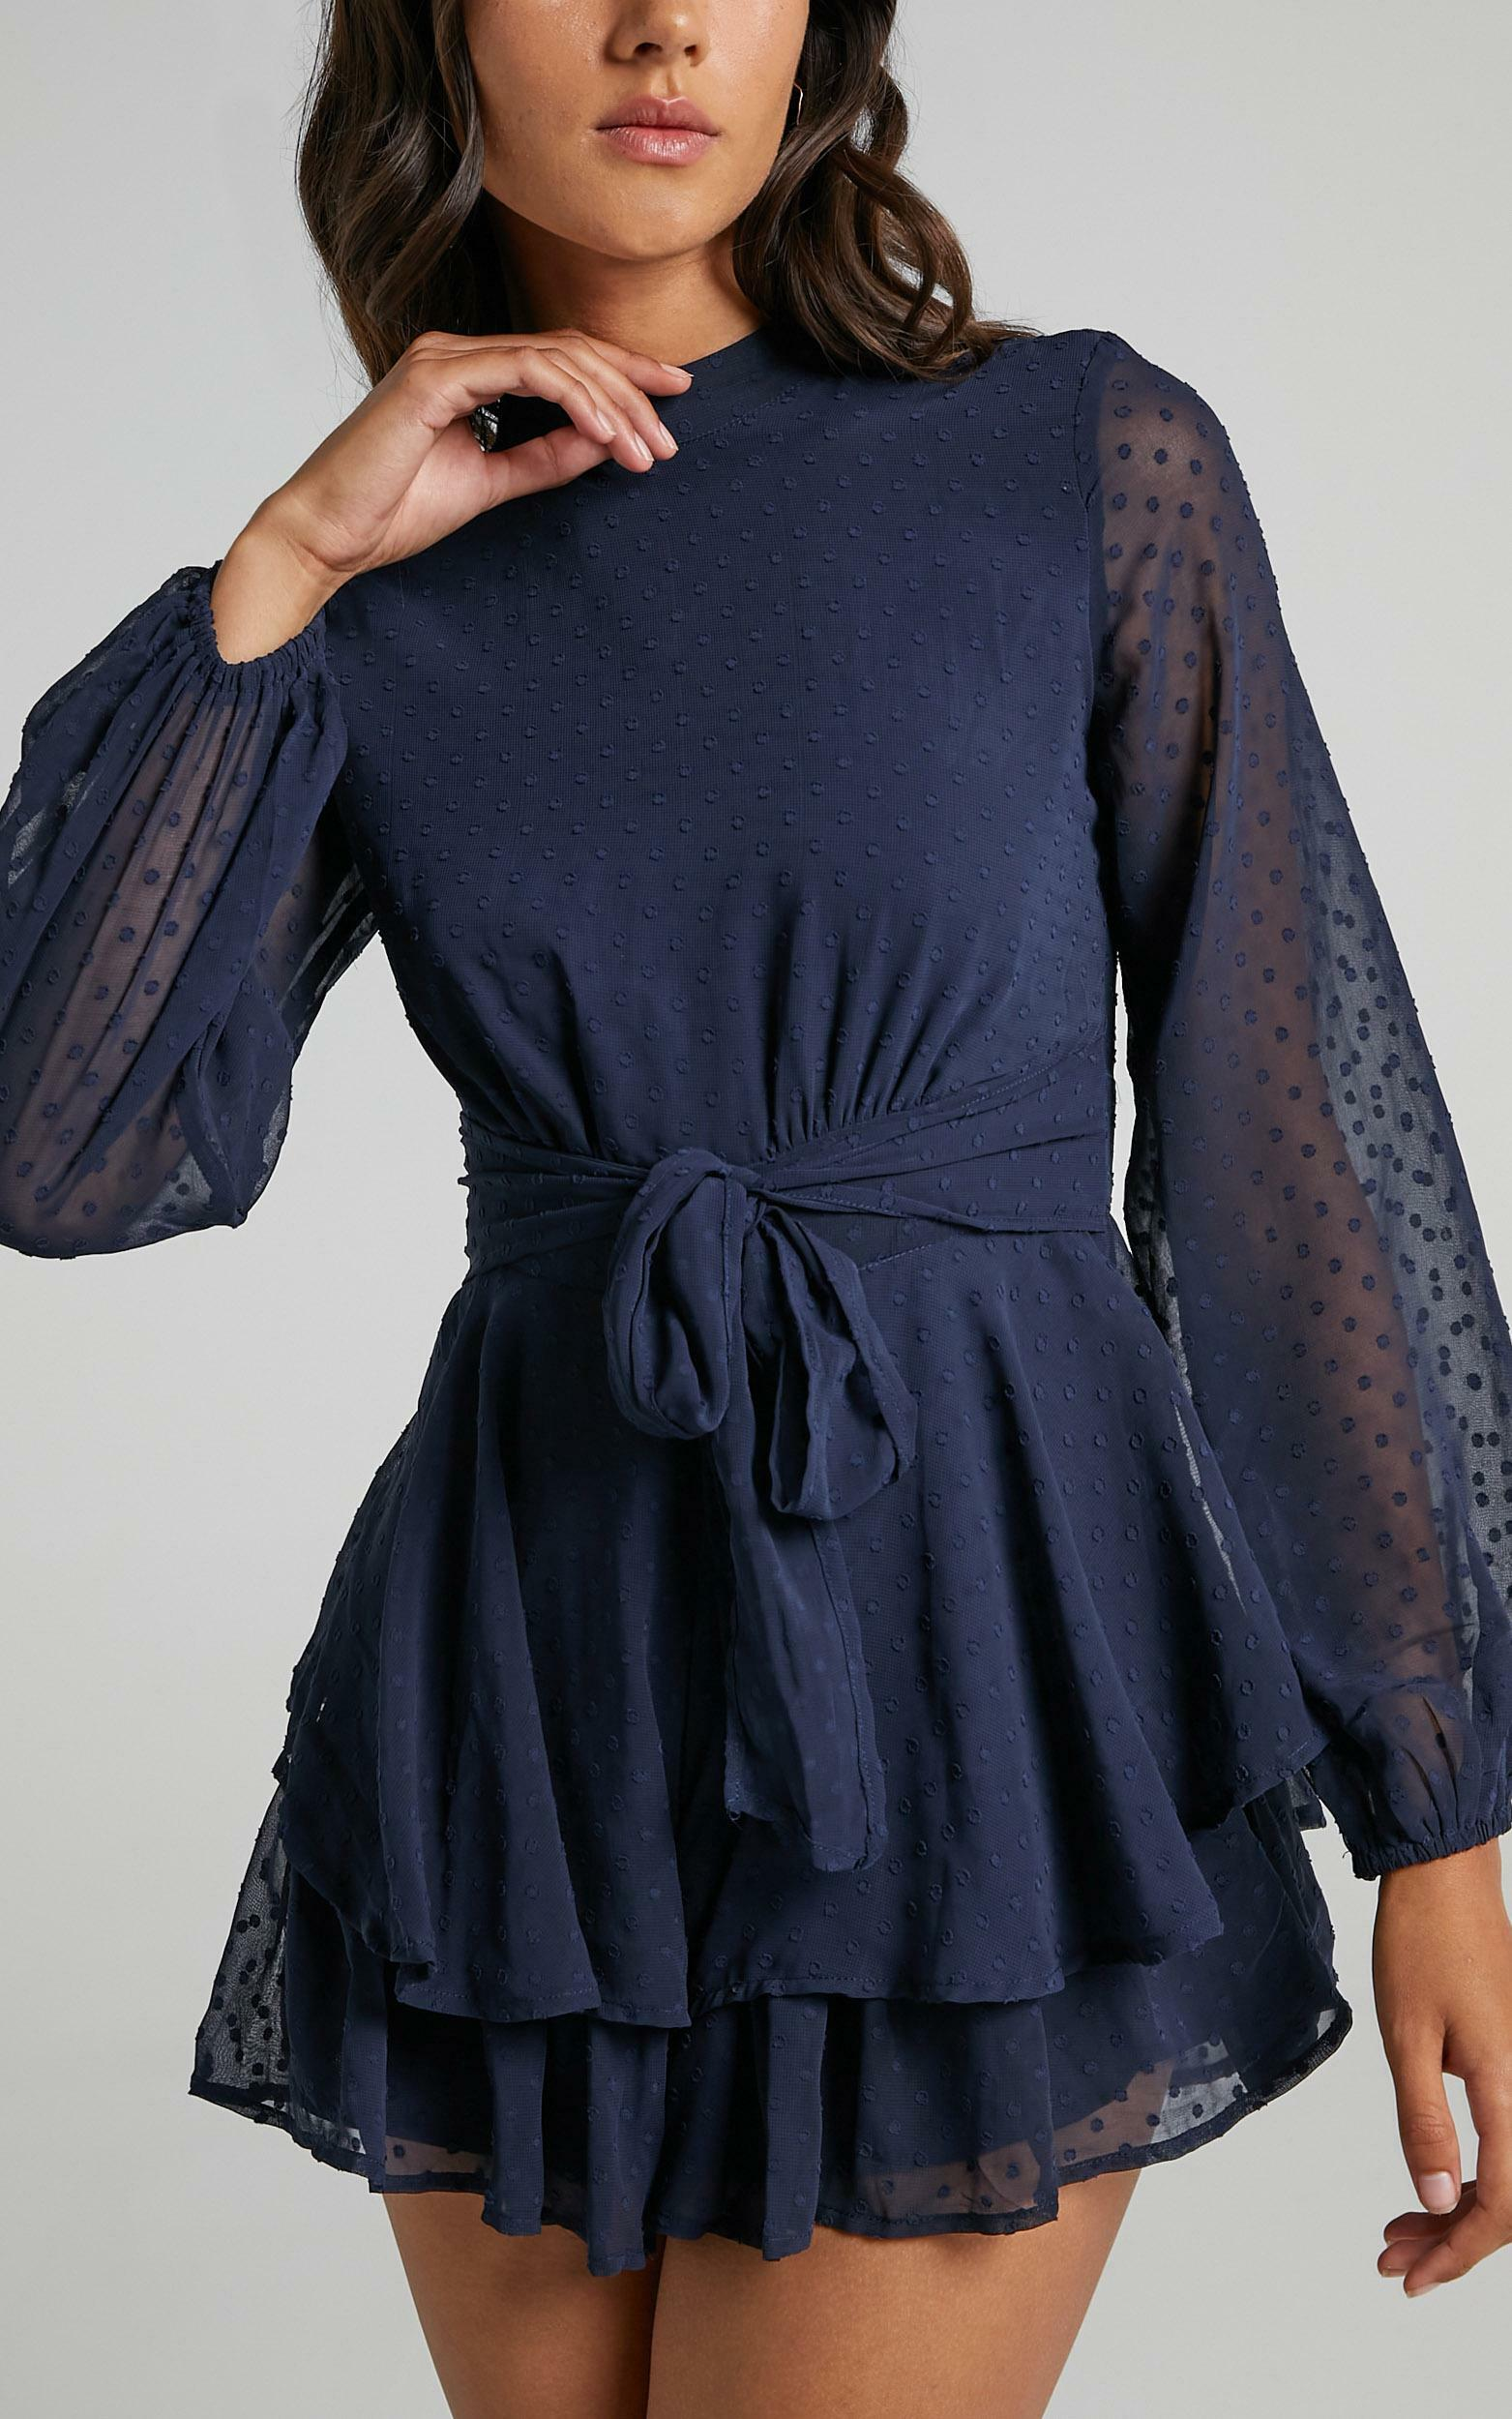 Bottom Of Your Heart Playsuit in Navy - 04, NVY5, hi-res image number null